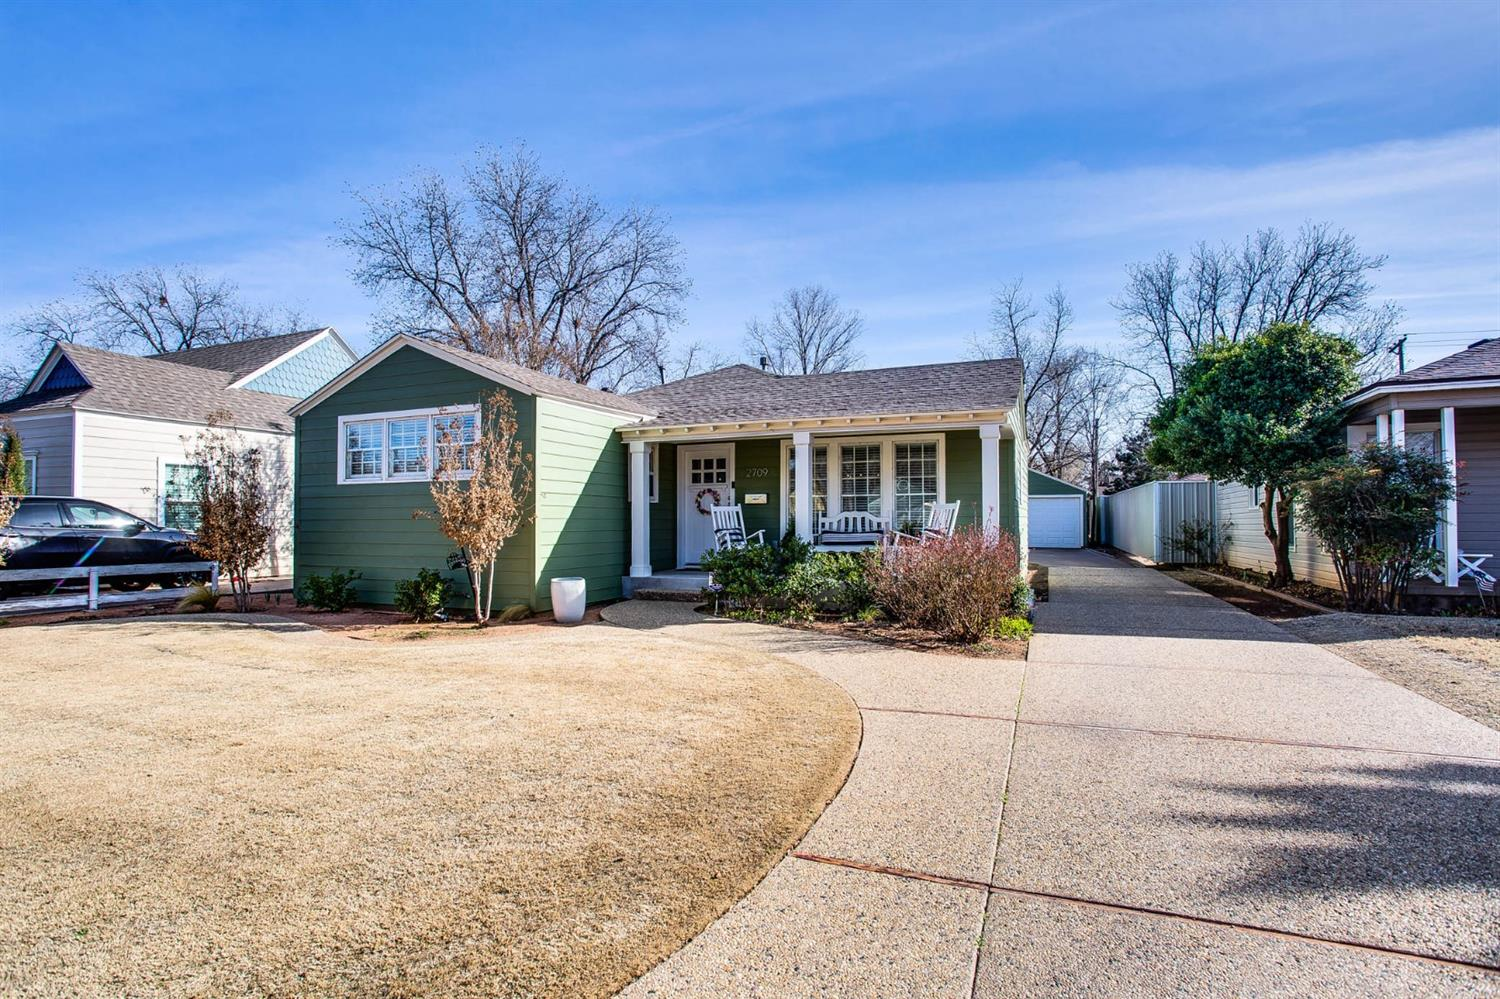 Fully remodeled dream home just a few blocks from Texas Tech in popular Tech Terrace neighborhood! Magnolia style throughout! This house actually makes YOU money! Owners added a guest suite behind the garage that is a popular rental on Airbnb making an average of $1,200/mo! It's called the Green Getaway & you can find it using this link: http://bit.ly/greengetaway. 3/2 with office in front house & 1/1 in guest house! Master bathroom recently remodeled with double vanities, quartz countertops, subway tile throughout, a custom vanity & shelving! Hall bathroom has also been recently remodeled with exposed shiplap, new floors, vanity, & reglazed bathtub! Original hardwoods throughout! This home has many smart features -- ring security system, doorbell camera, flood light cameras above the garage, & a new Nest thermostat! Detached 2 car garage - rare in the neighborhood! Hot tub in backyard is only 4 years old! Manicured front/back yard! One of the best houses in the area! Won't last long!